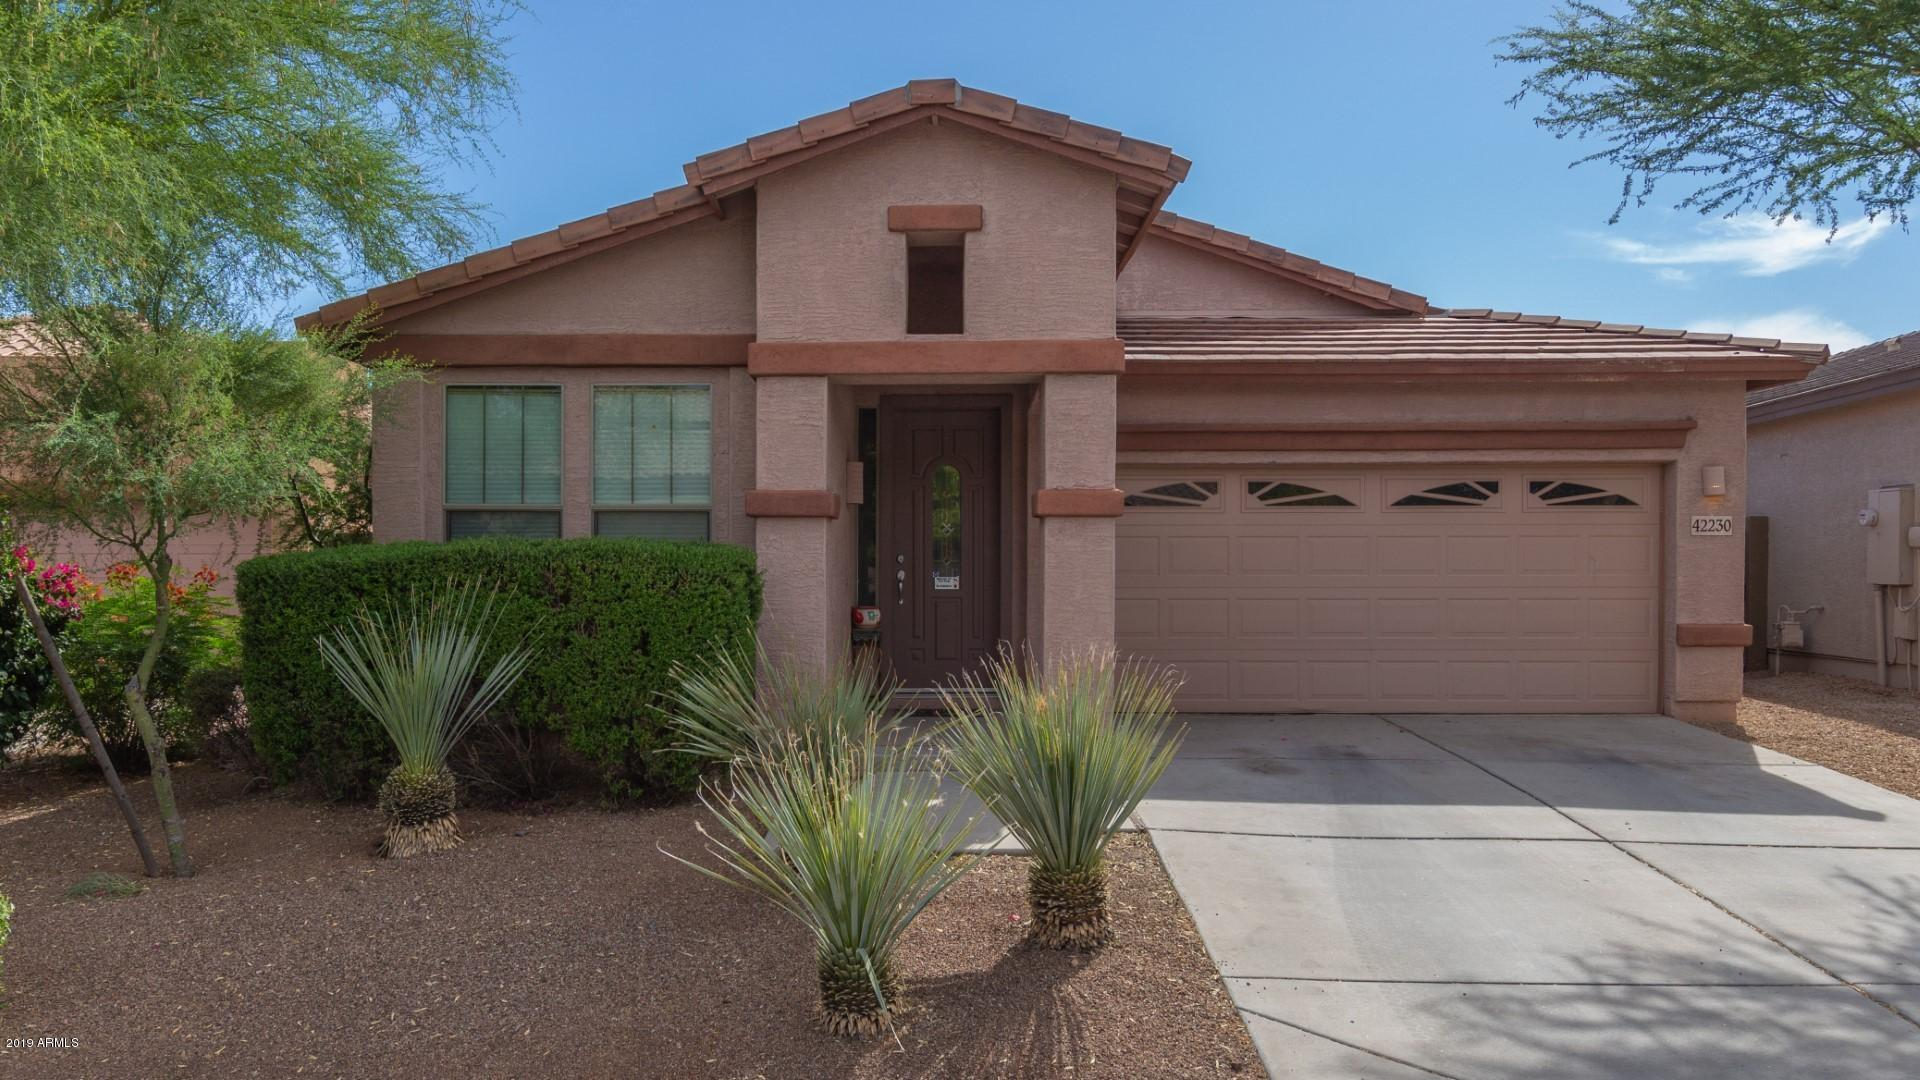 42230 N 46TH Lane, Anthem in Maricopa County, AZ 85086 Home for Sale